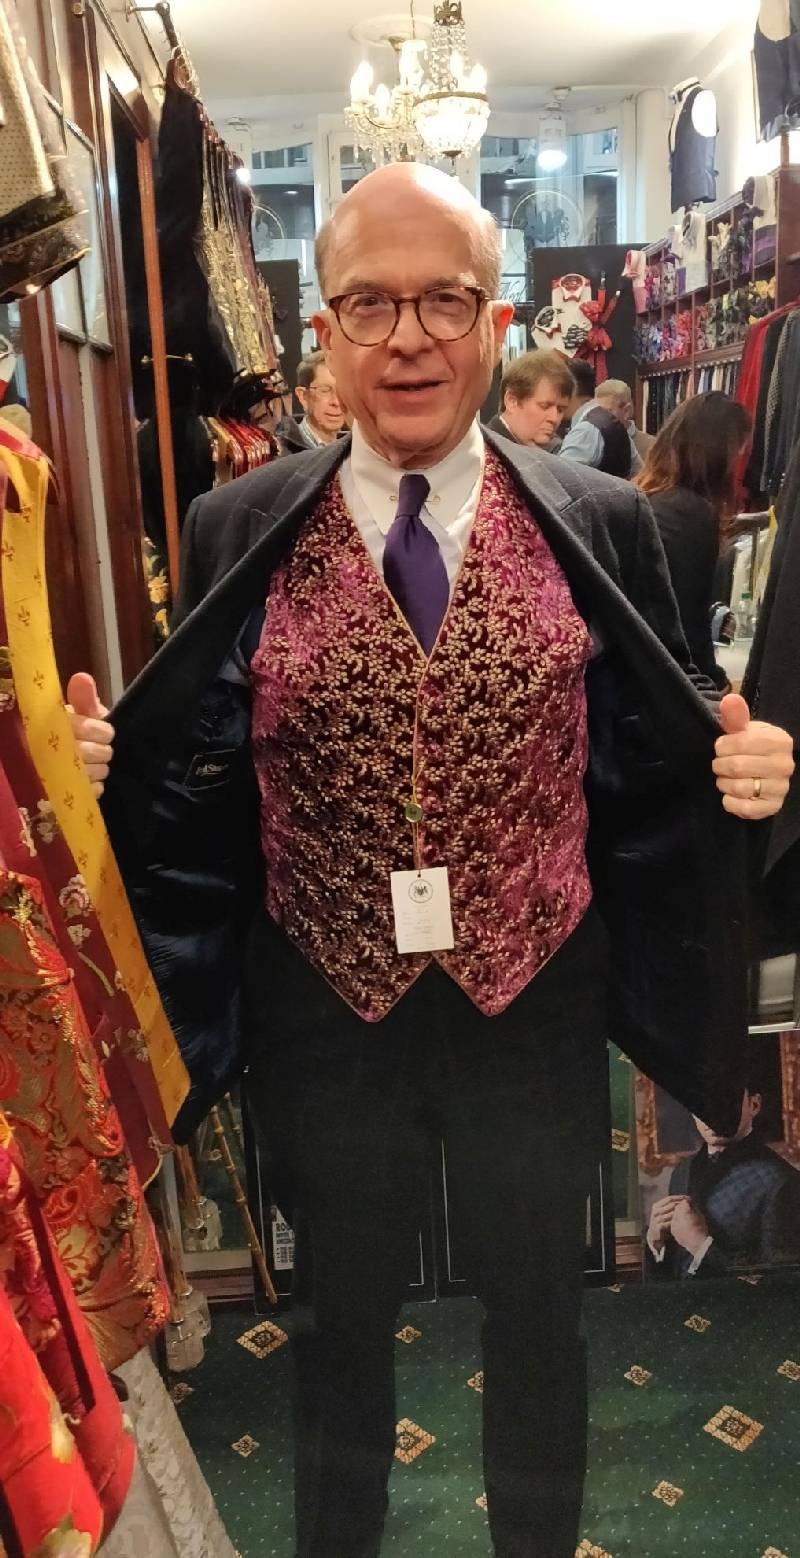 Bruce showing off his Neal and Palmer waistcoat